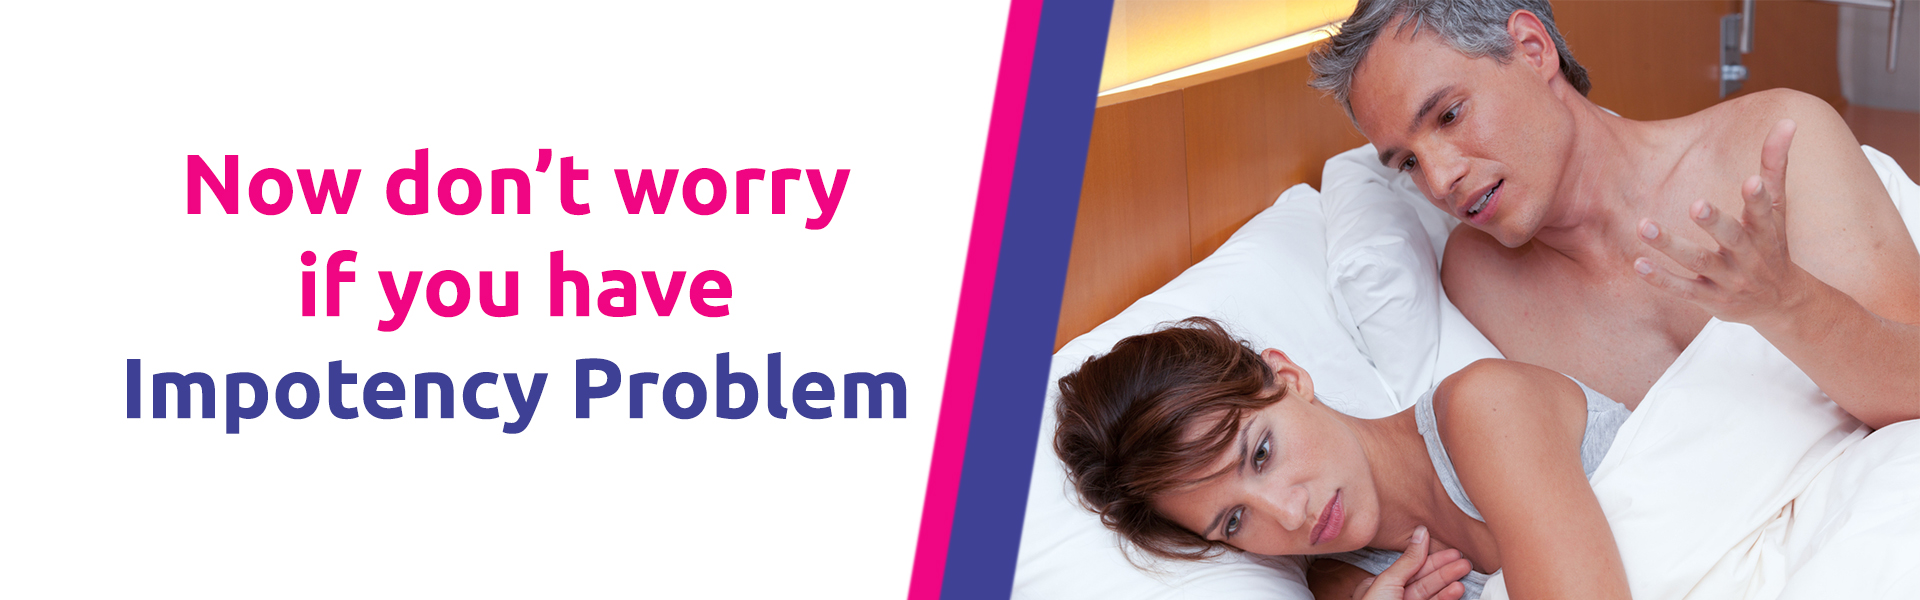 Impotence problem -sexclinic